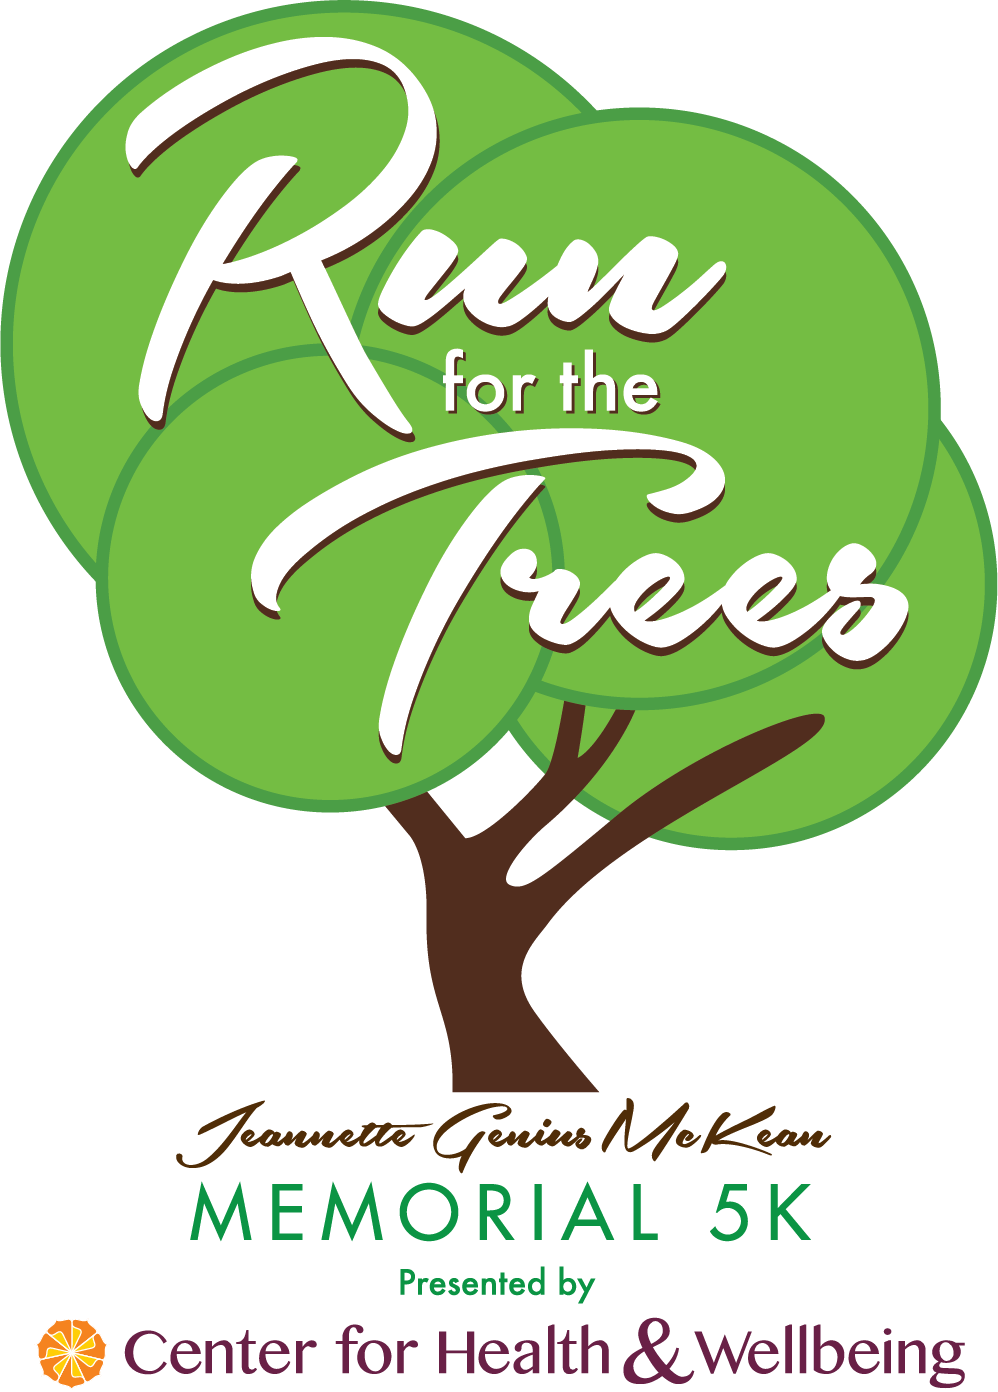 Run for the Trees Jeannette Genius McKean Memorial 5k presented by Center for Health & Wellbeing